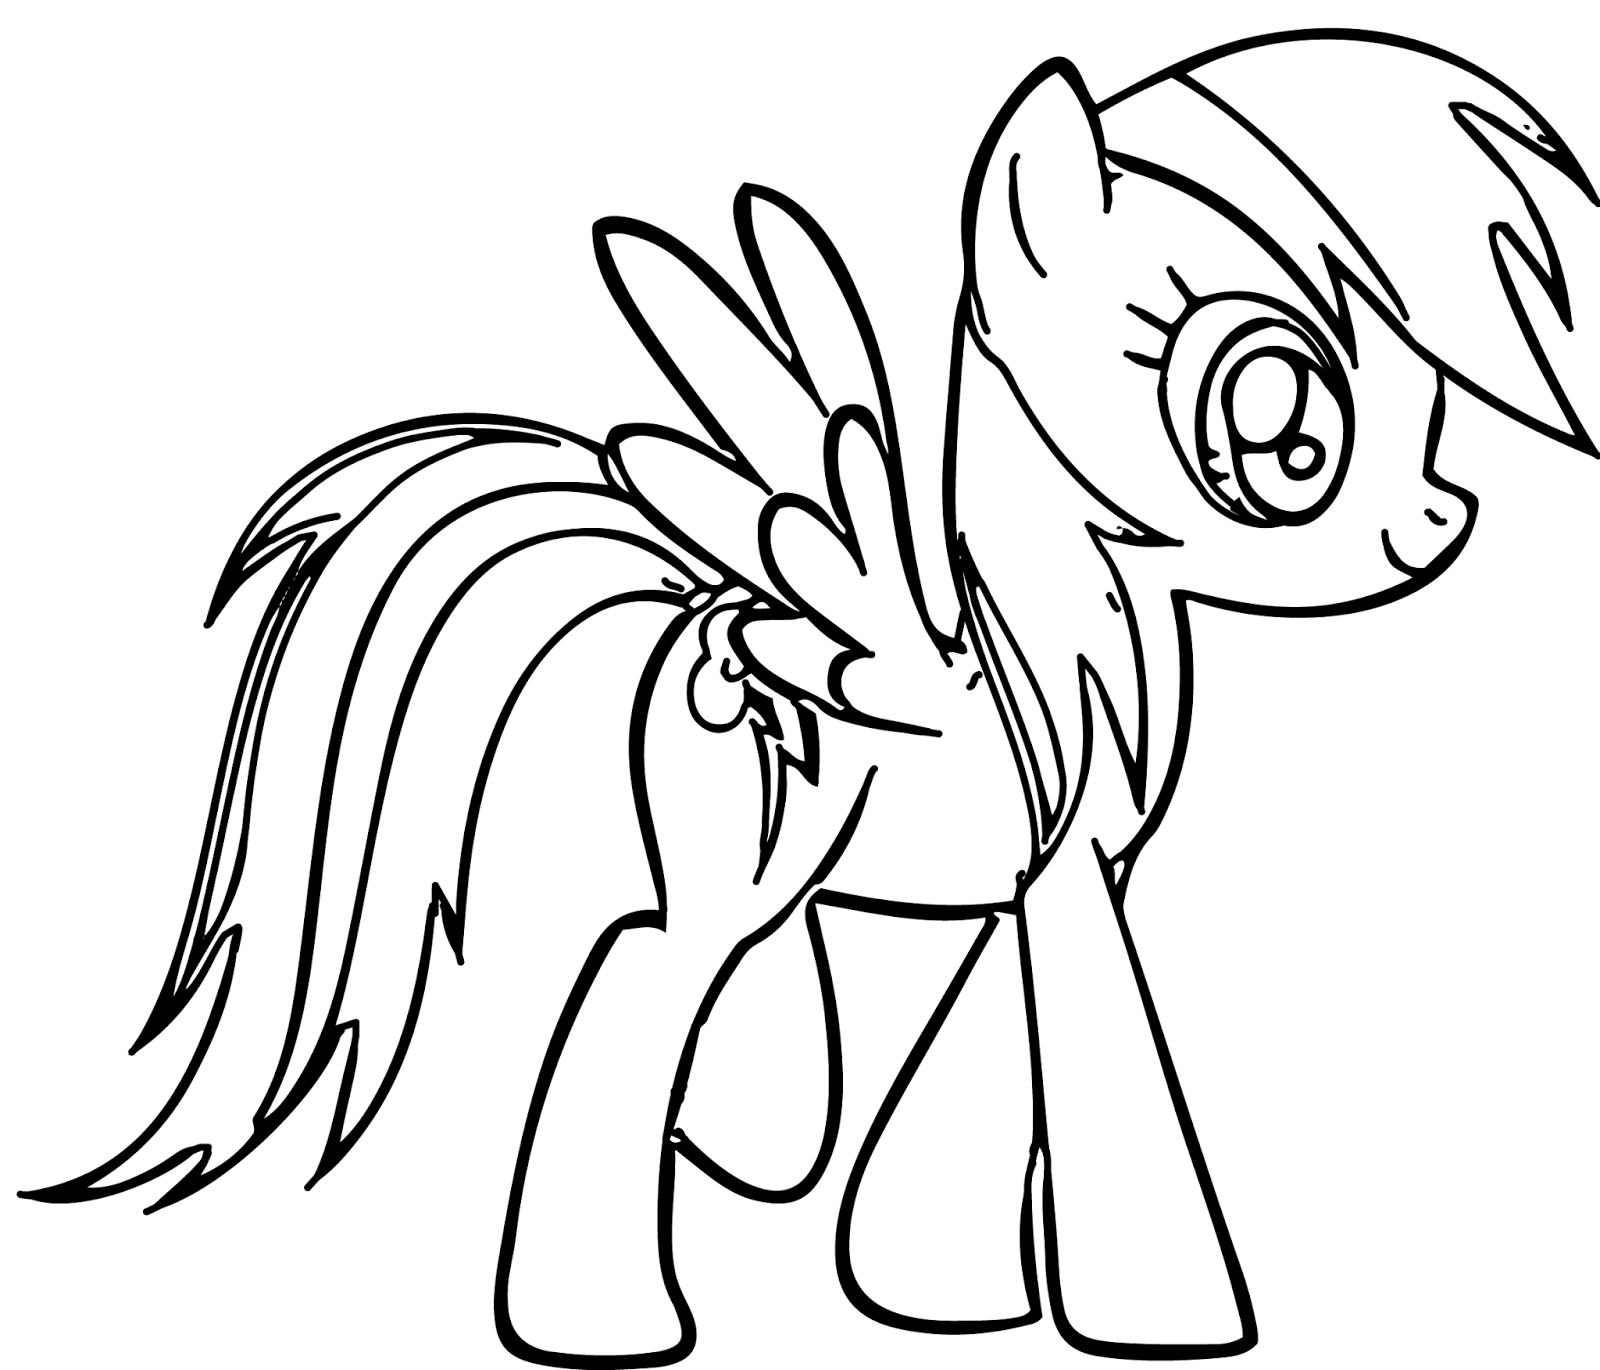 Rainbow Dash Coloring Page Clipart Panda